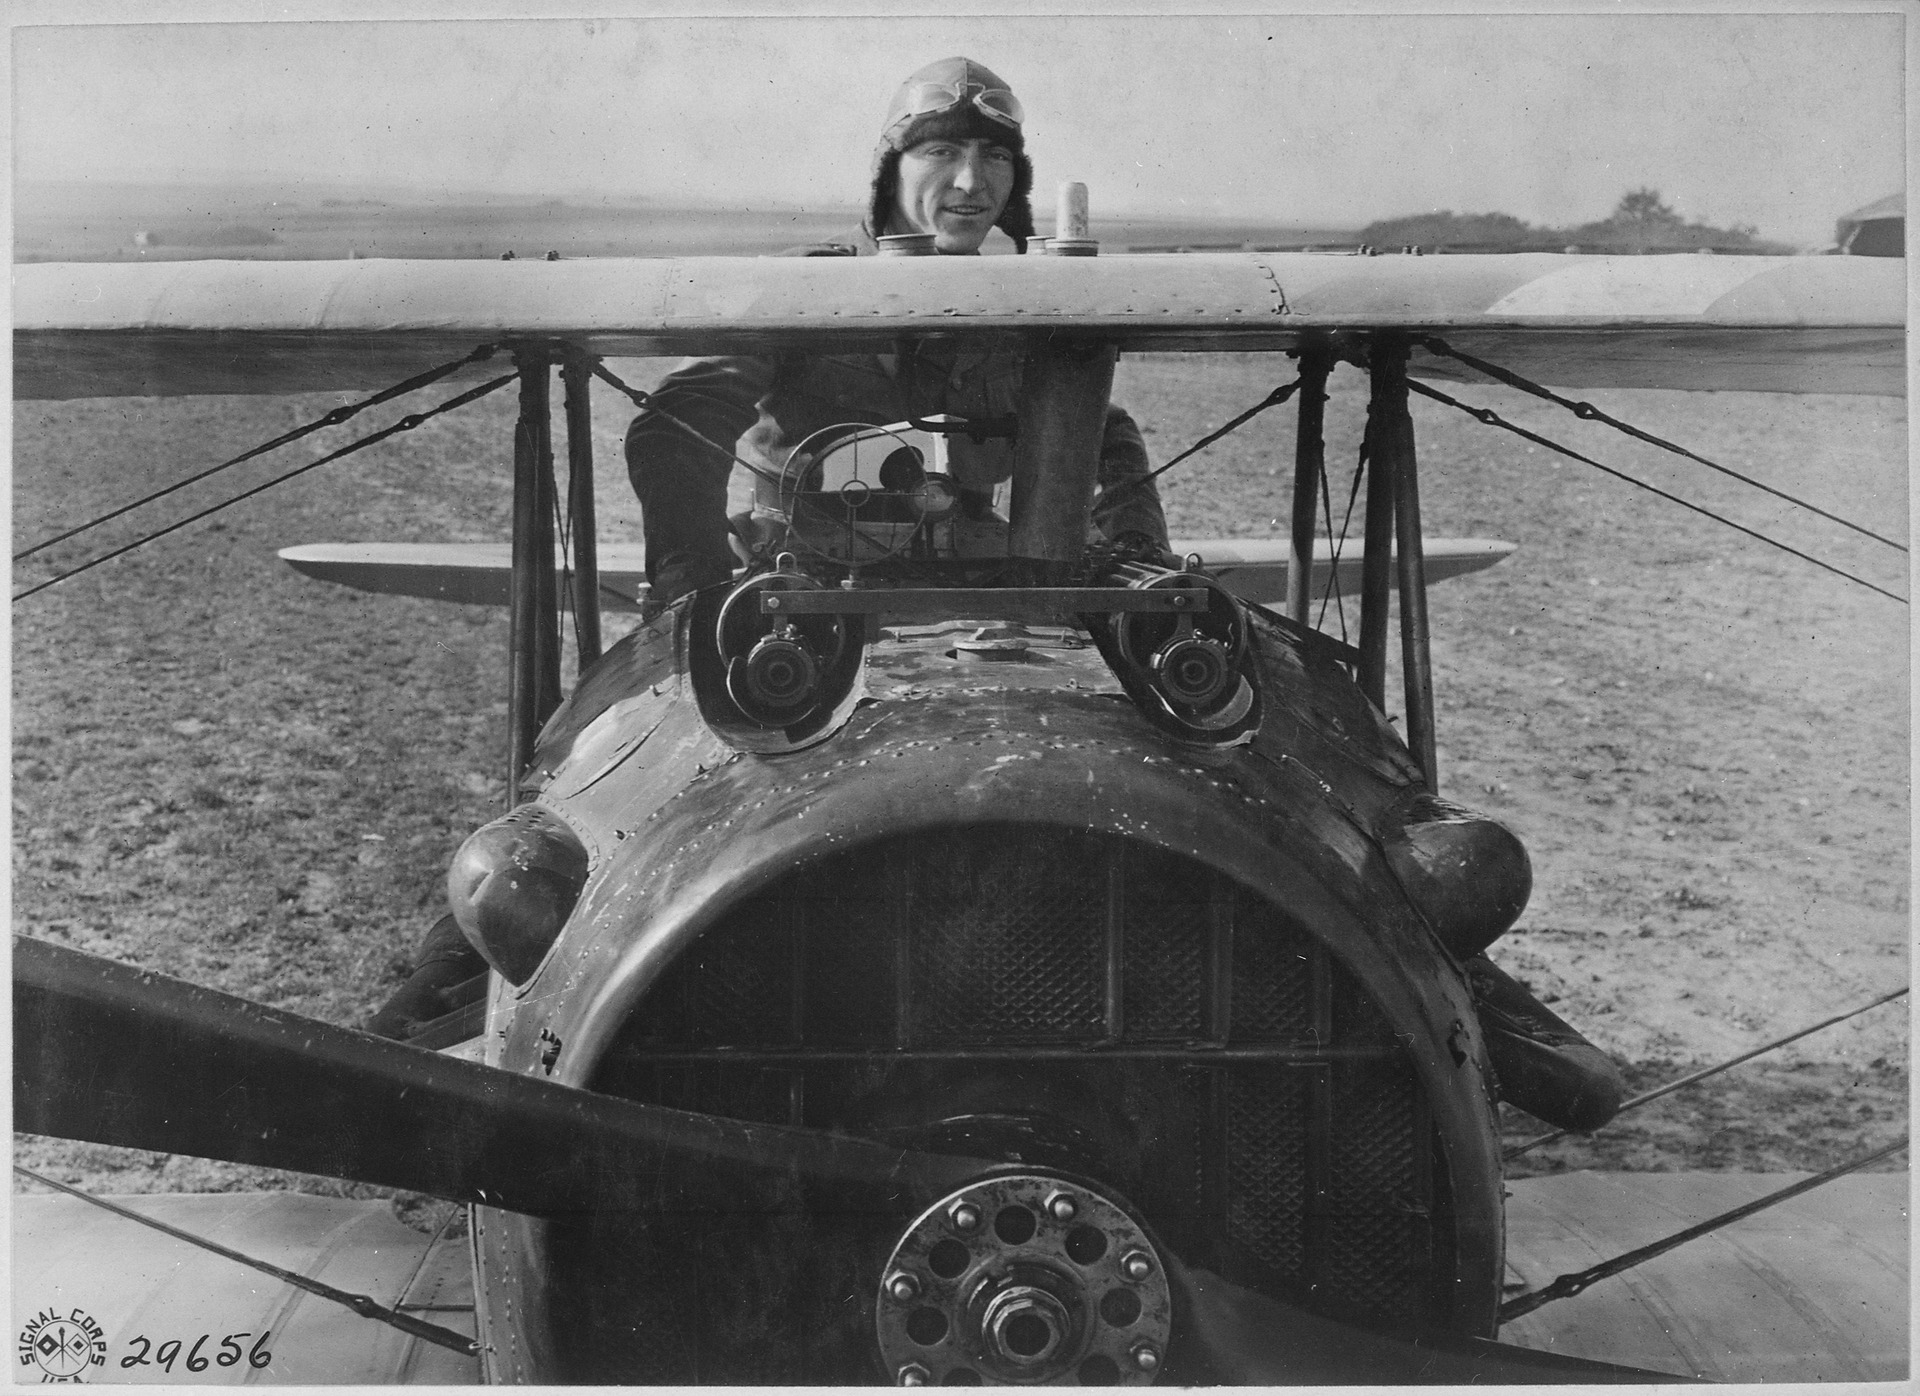 First_Lieutenant_E._V._(Eddie)_Rickenbacker,_94th_Aero_Squadron,_American_ace,_standing_up_in_his_Spad_plane._Near..._-_NARA_-_530773.tif